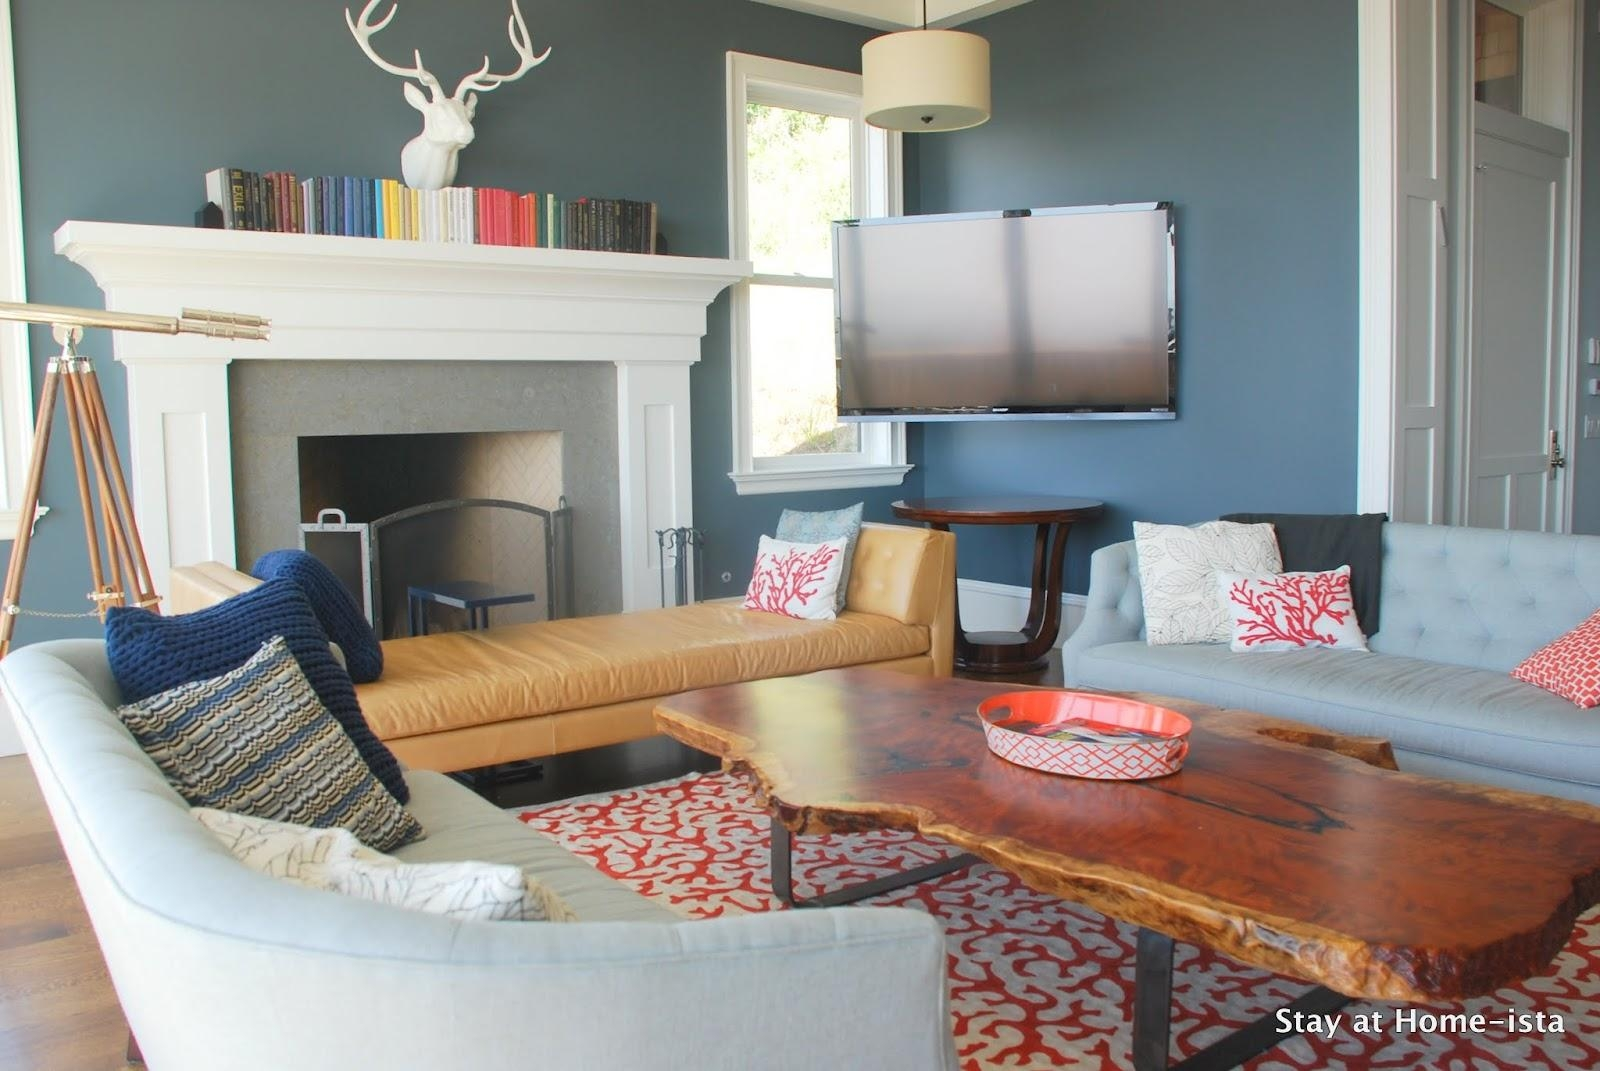 Remodelaholic | Immaculate Living Room Intended For Room And Board Wells Sofas (Image 6 of 20)